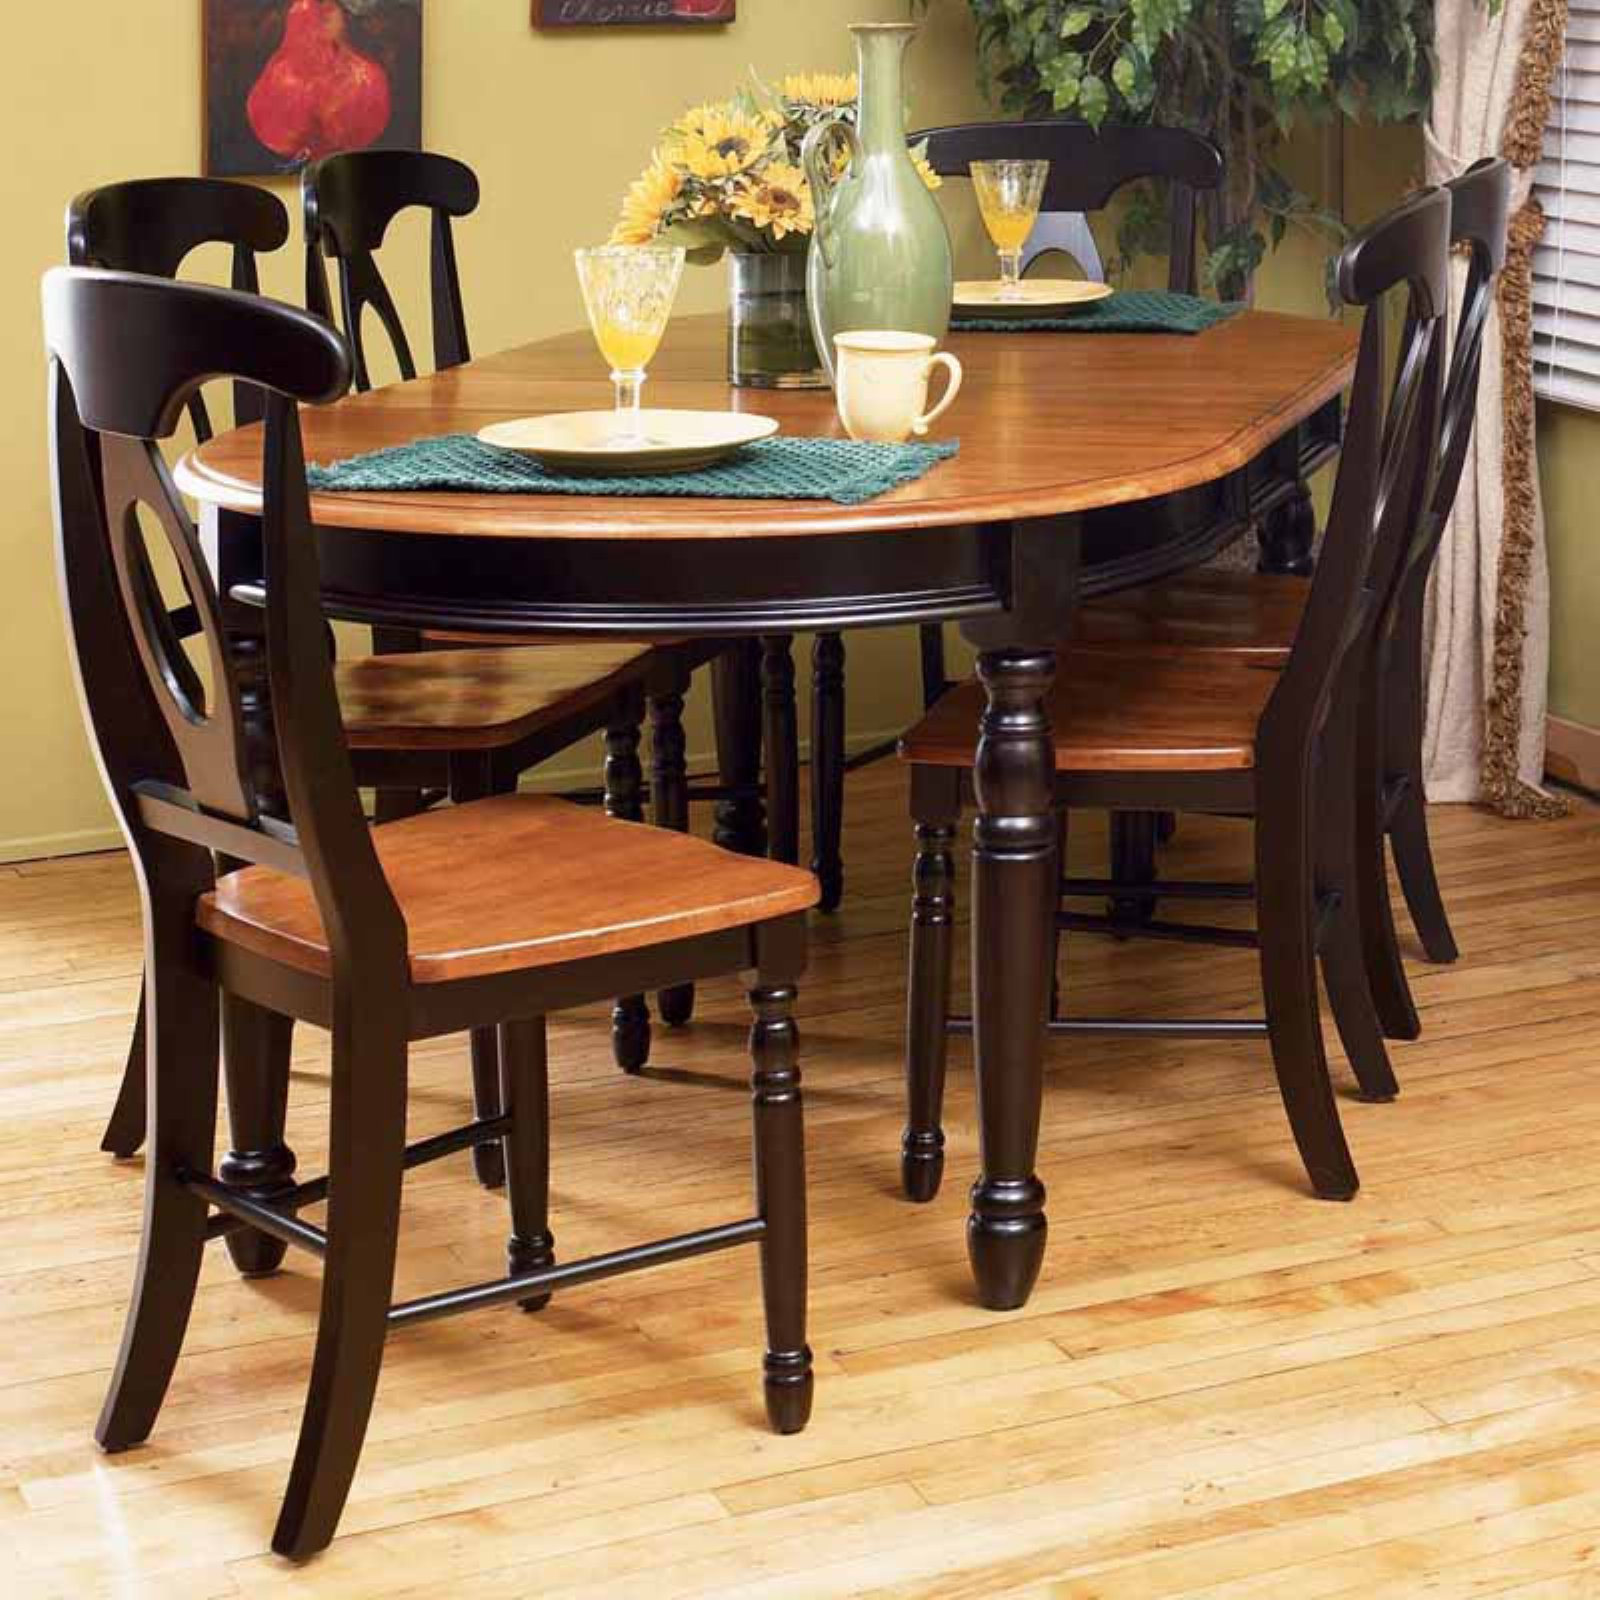 A-America British Isles Oval Dining Table